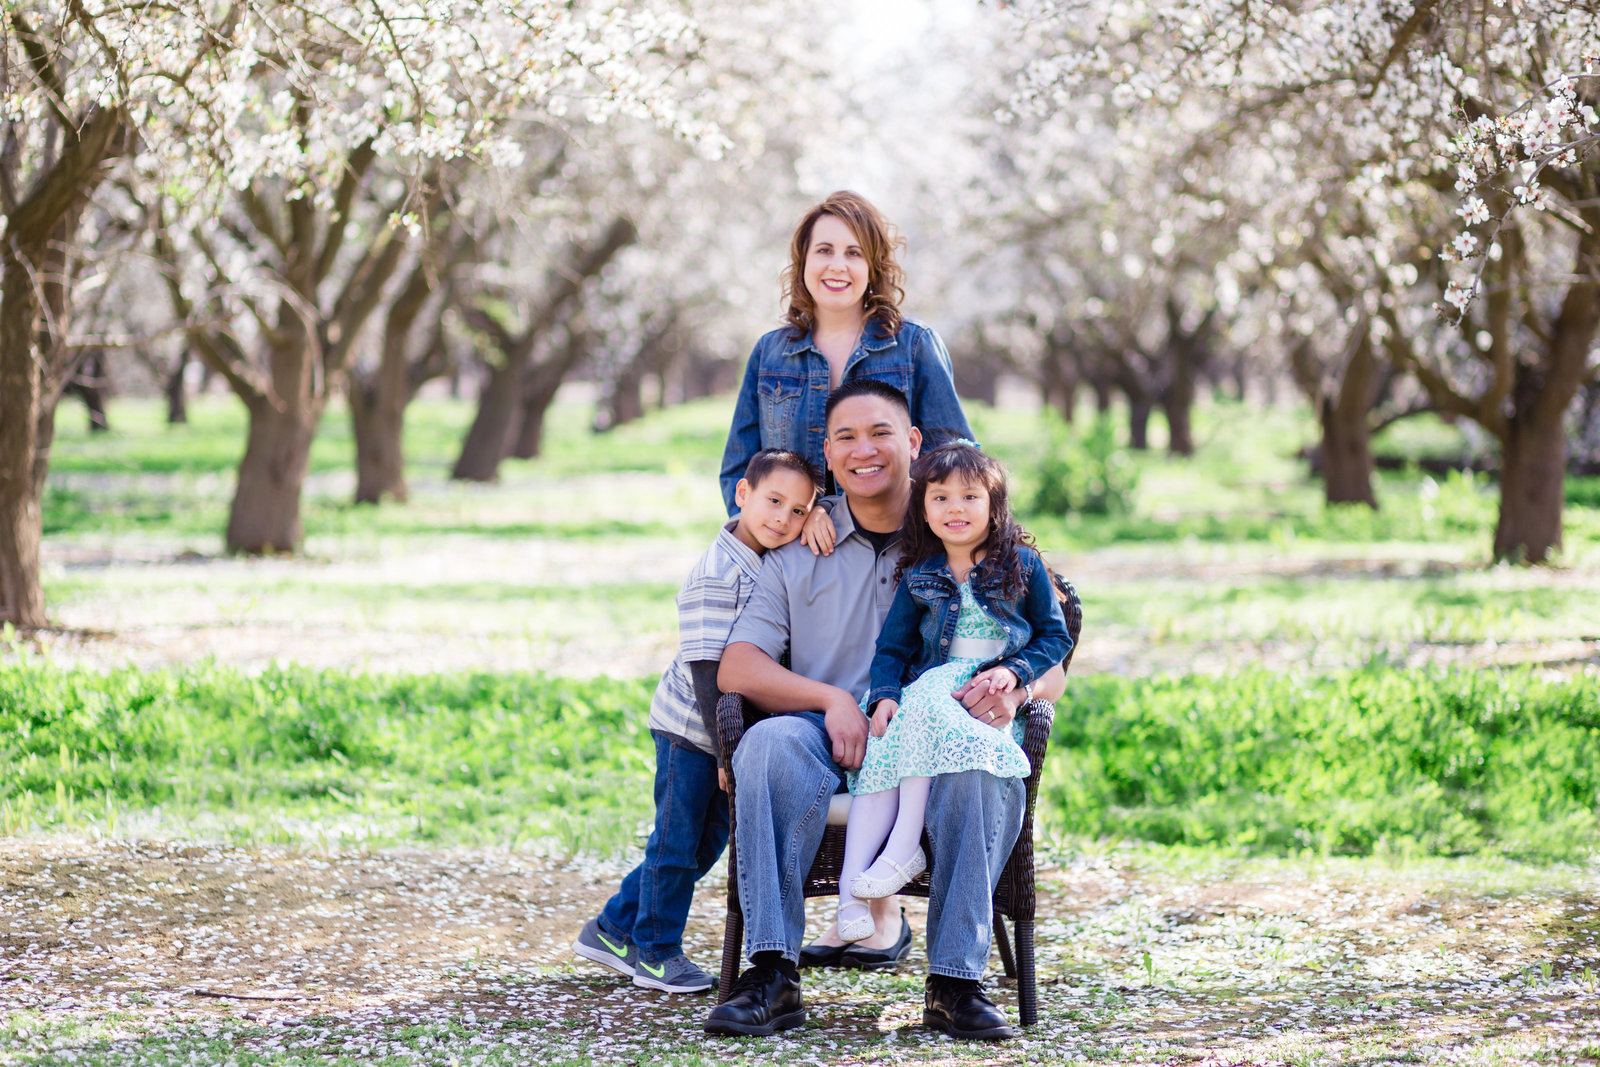 134-Prado_Family-4T2A9896-edited